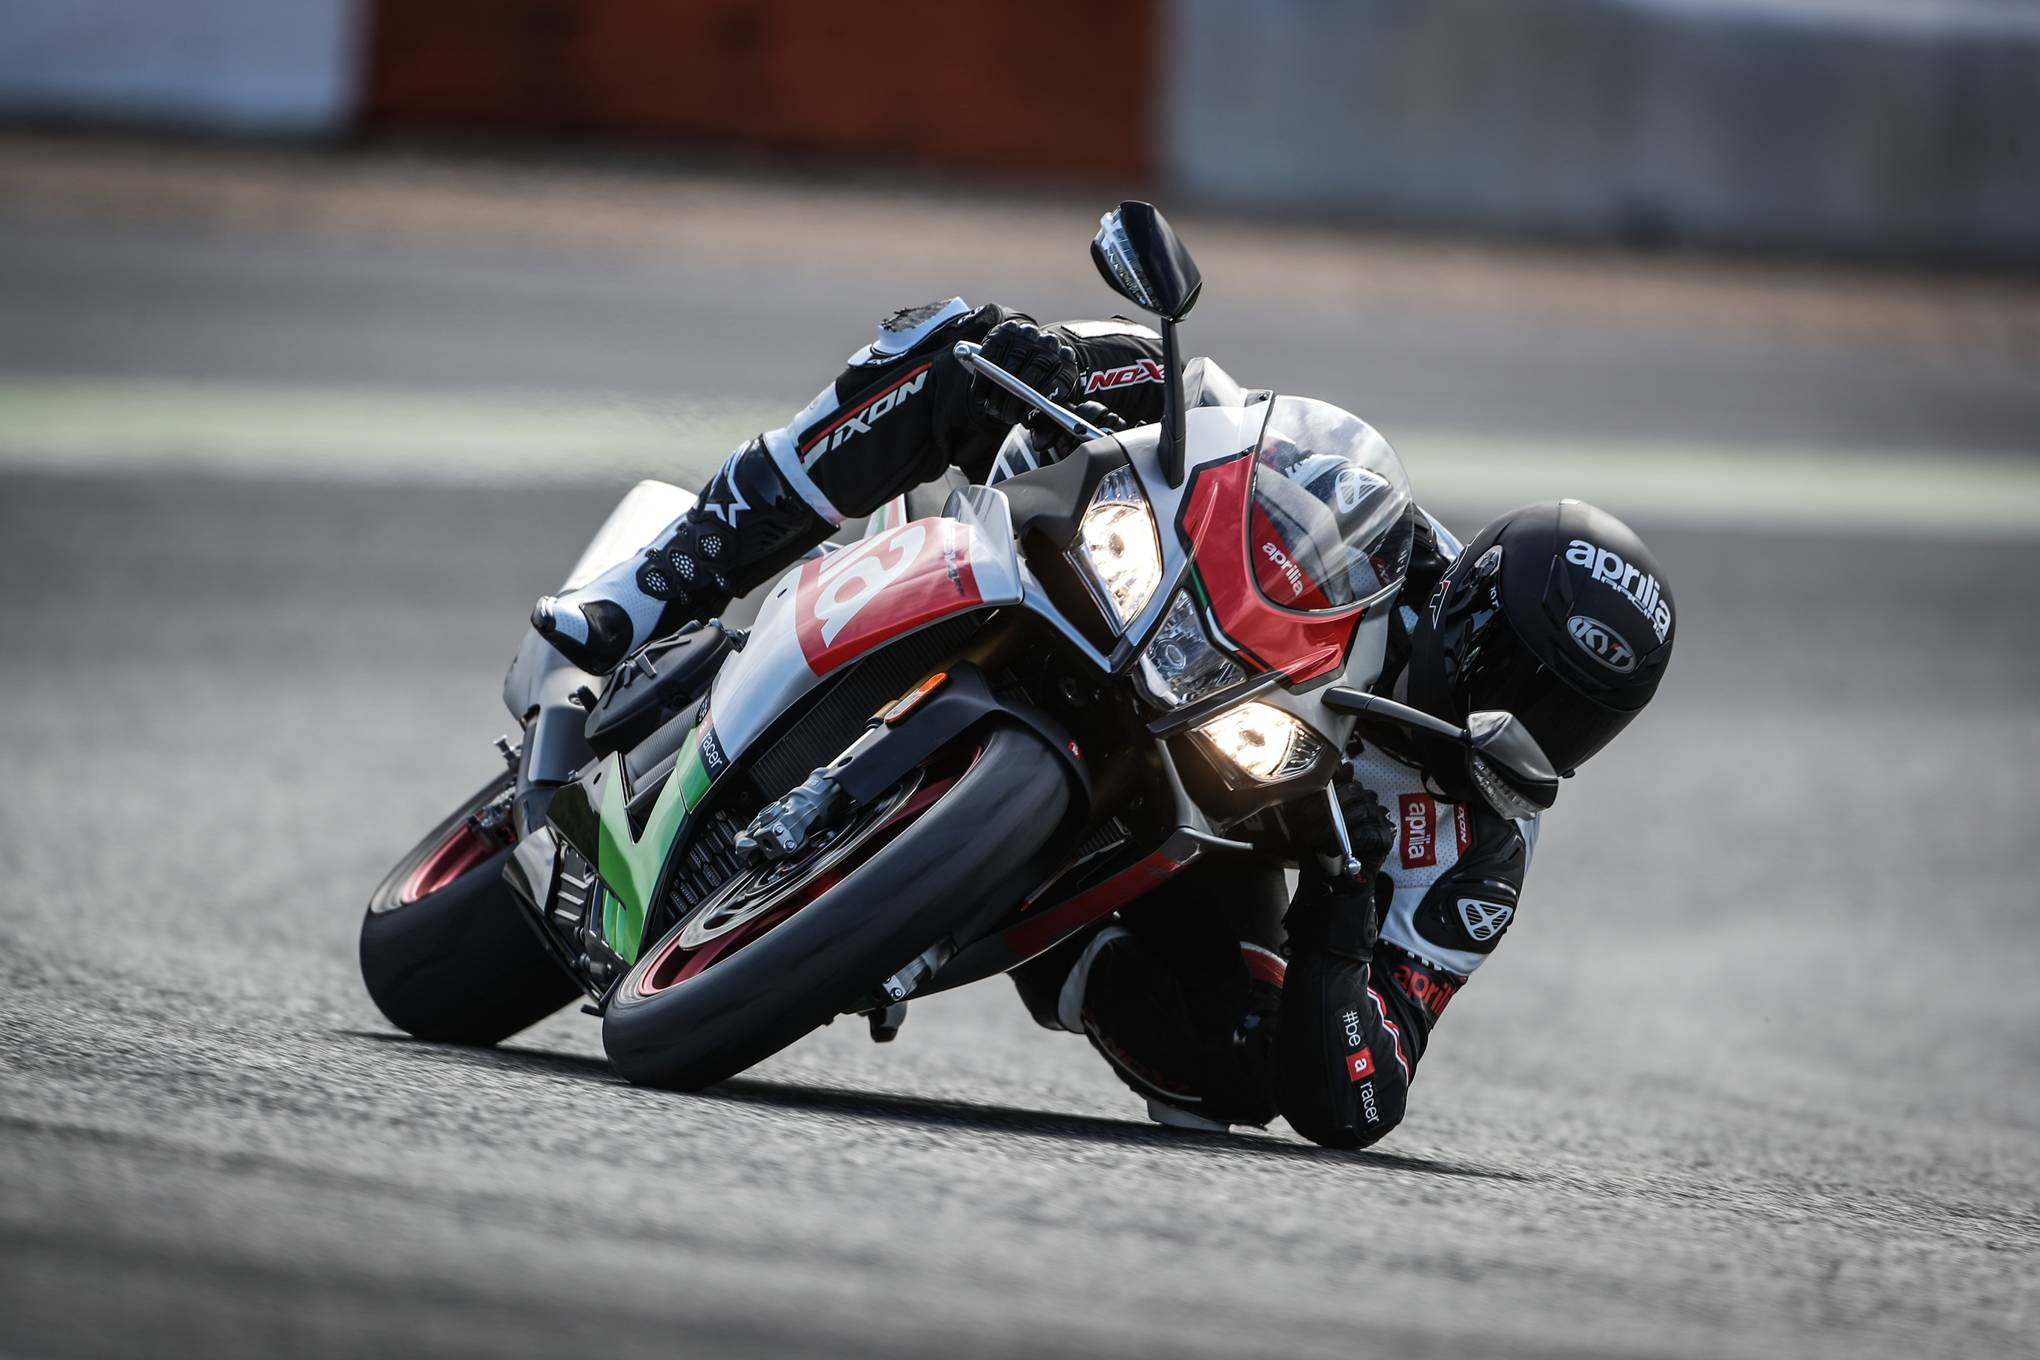 Aprilia is now represented in Malaysia by Didi Resources